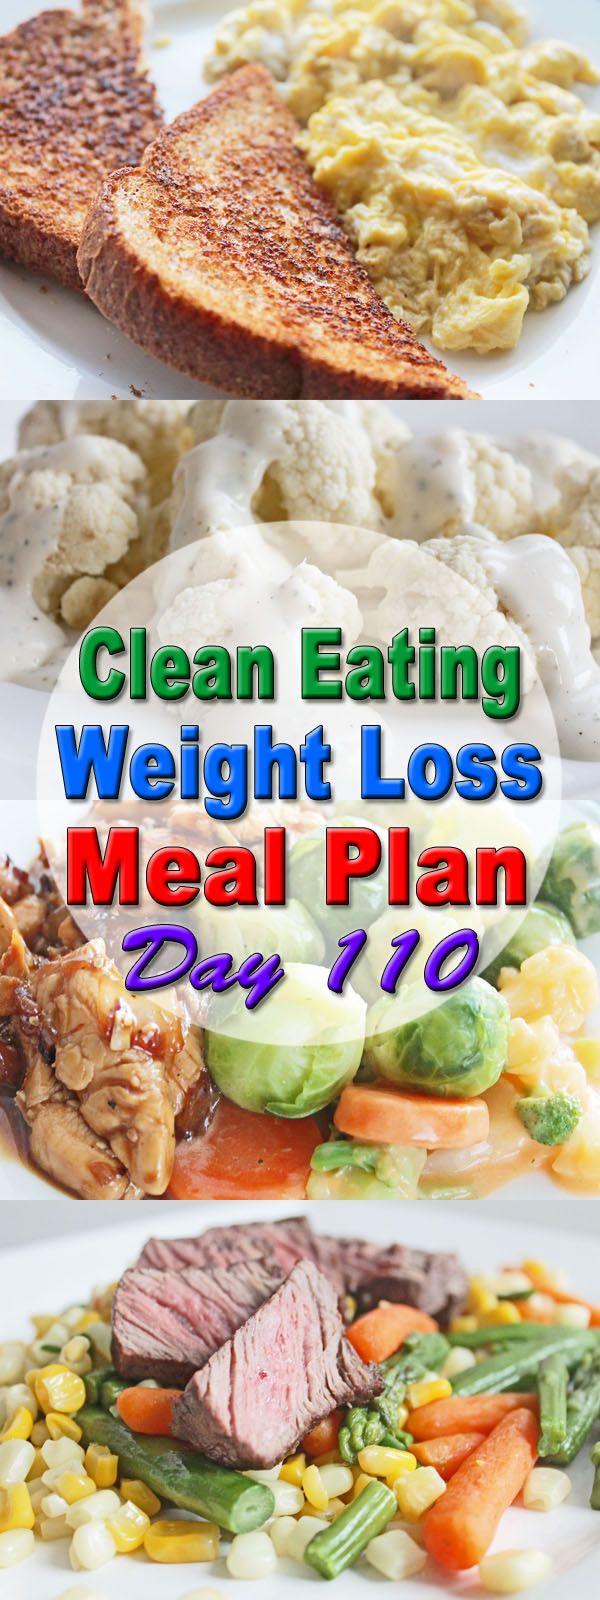 Clean Eating Foods For Weight Loss  Clean Eating Weight Loss Meal Plan 110